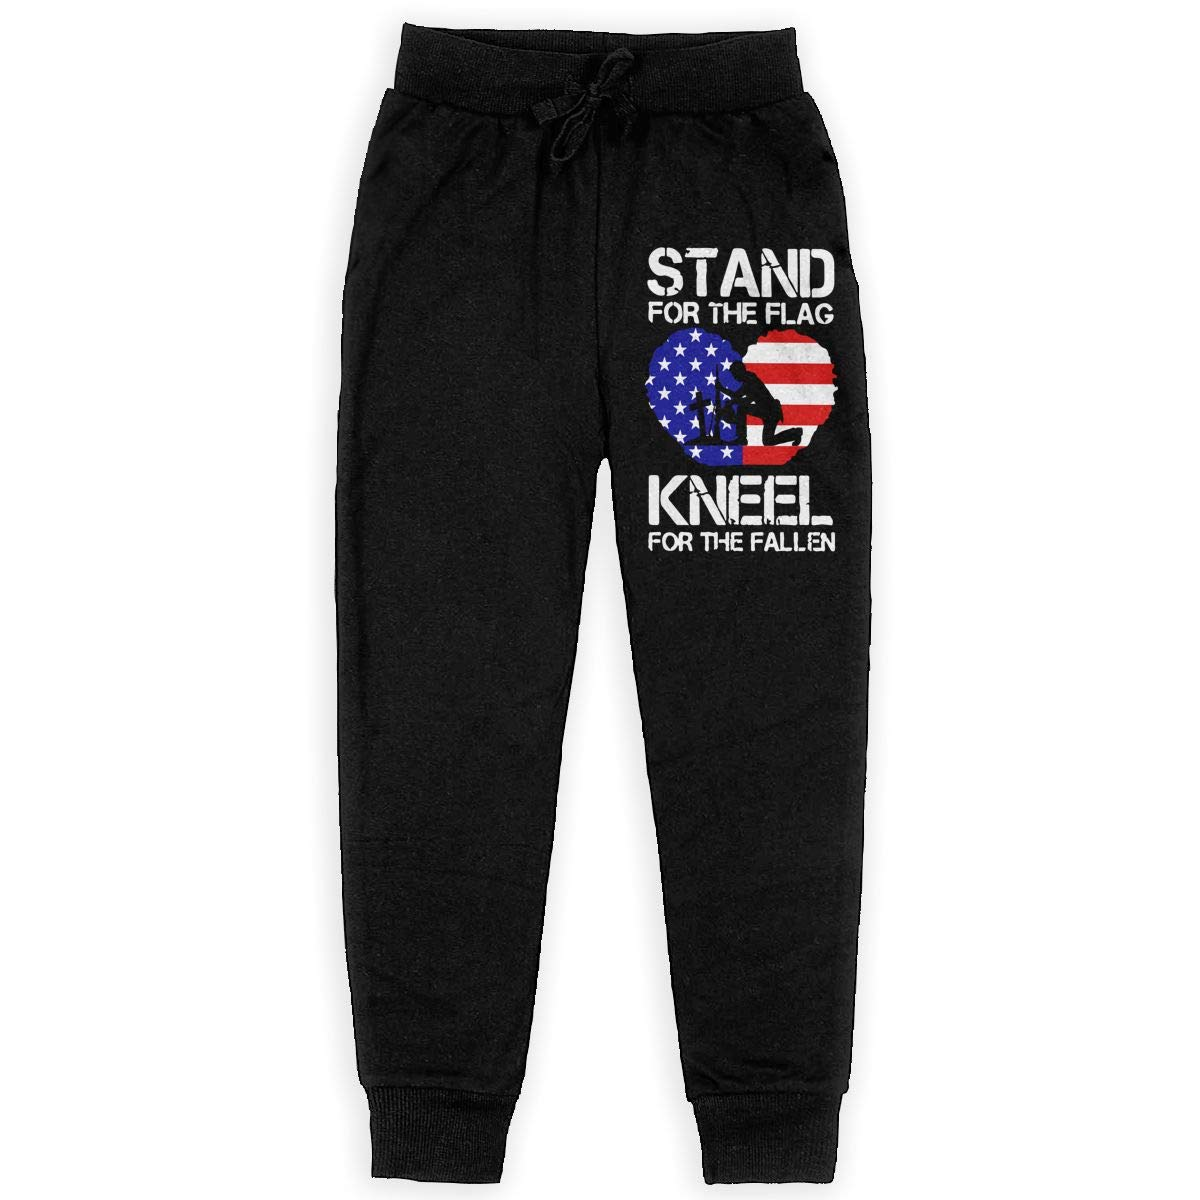 Kneel for The Fallen Soft//Cozy Sweatpants Boys Athletic Pants for Teenager Girls Stand for The Flag